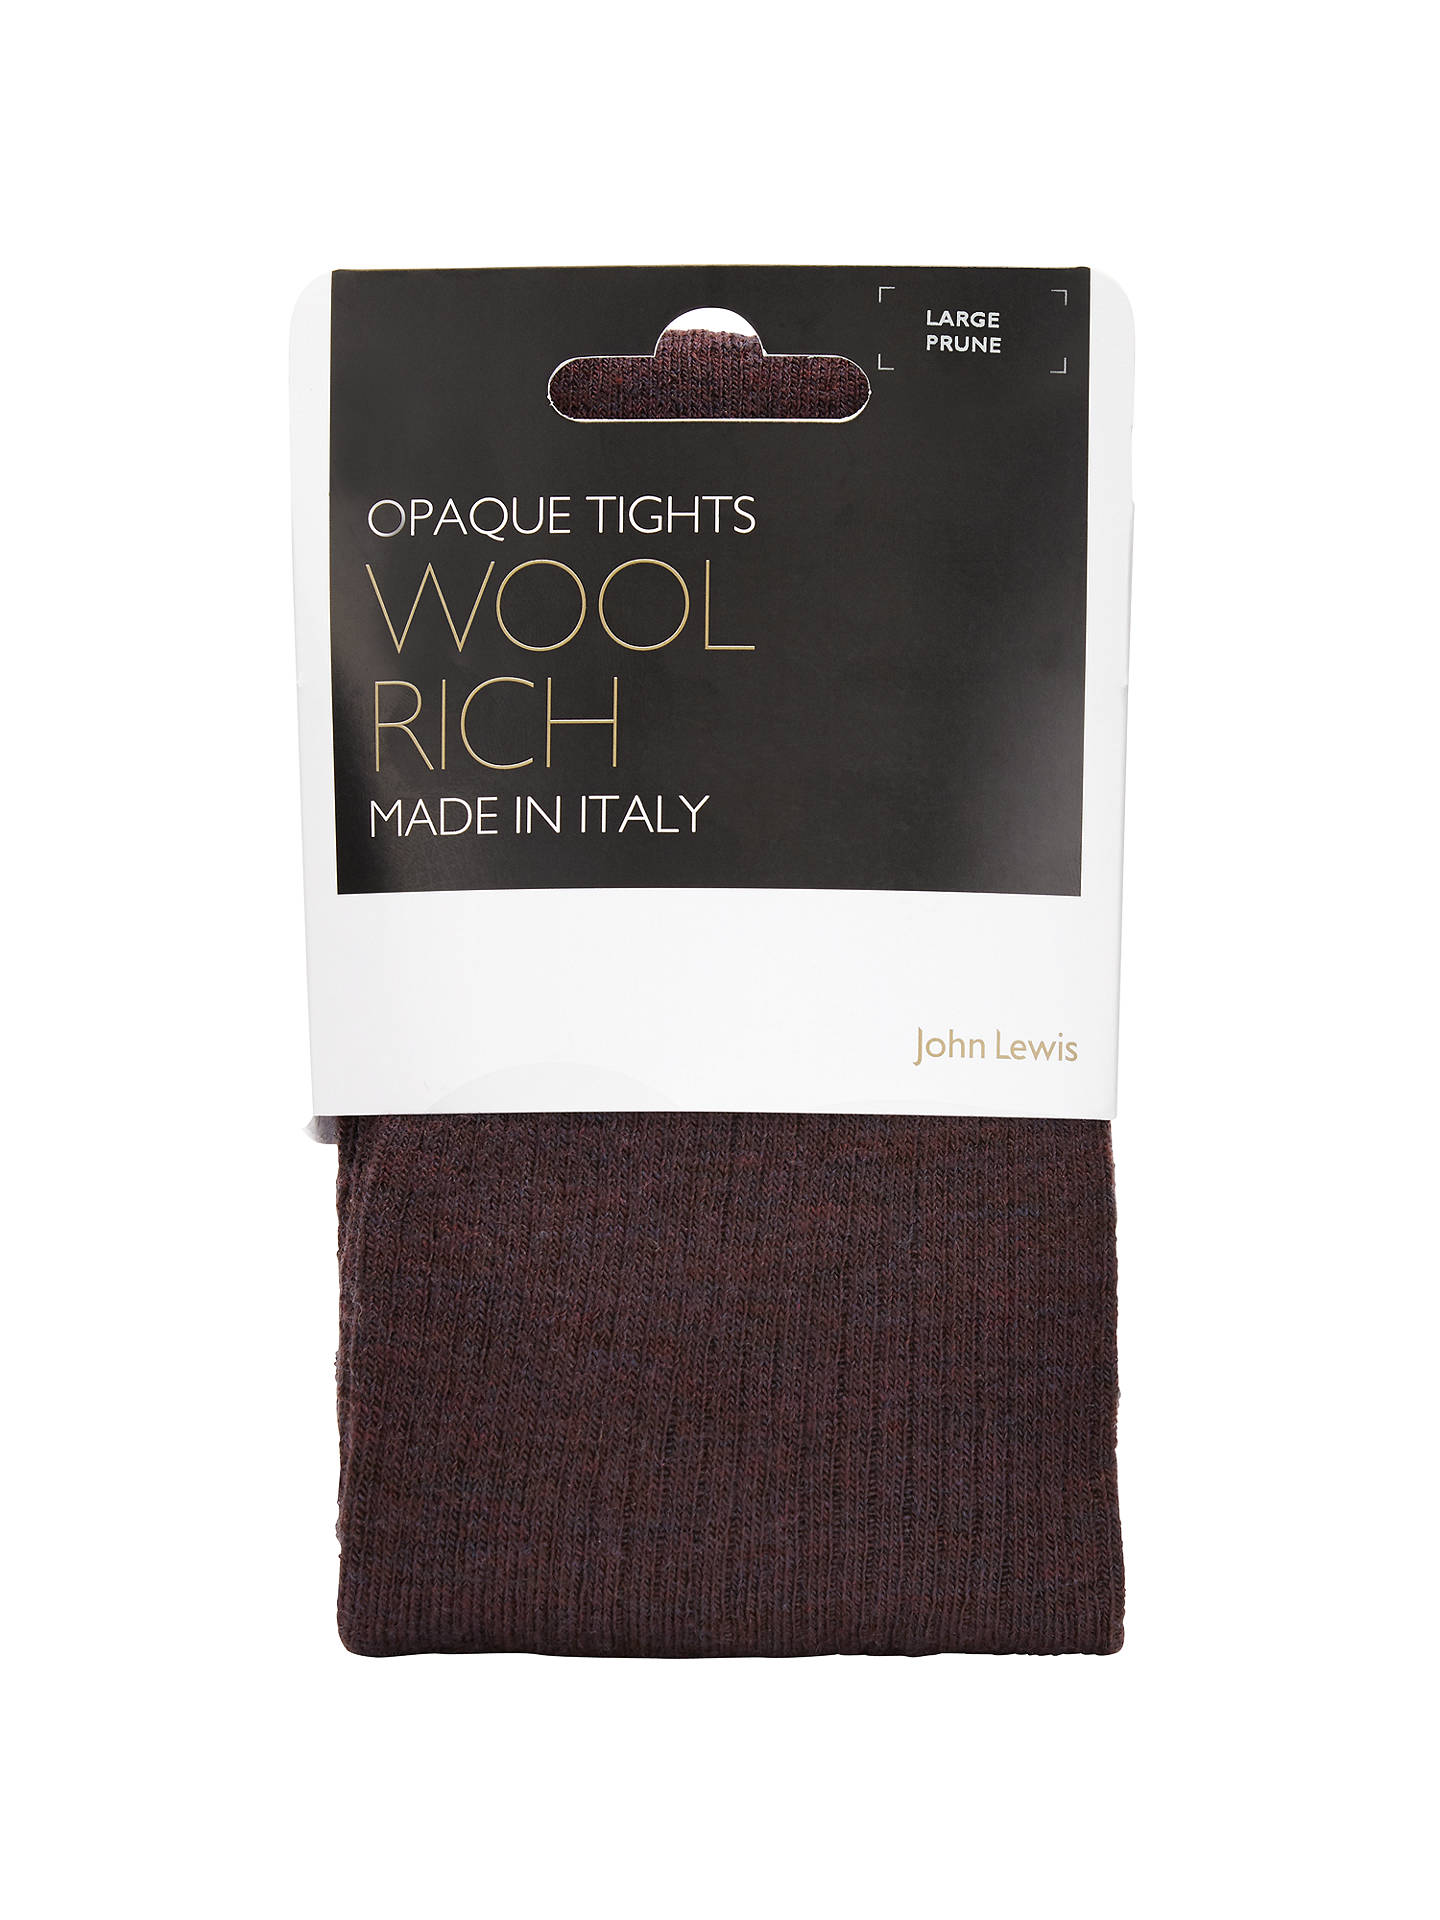 Buy John Lewis Wool Ribbed Opaque Tights, Prune, M Online at johnlewis.com